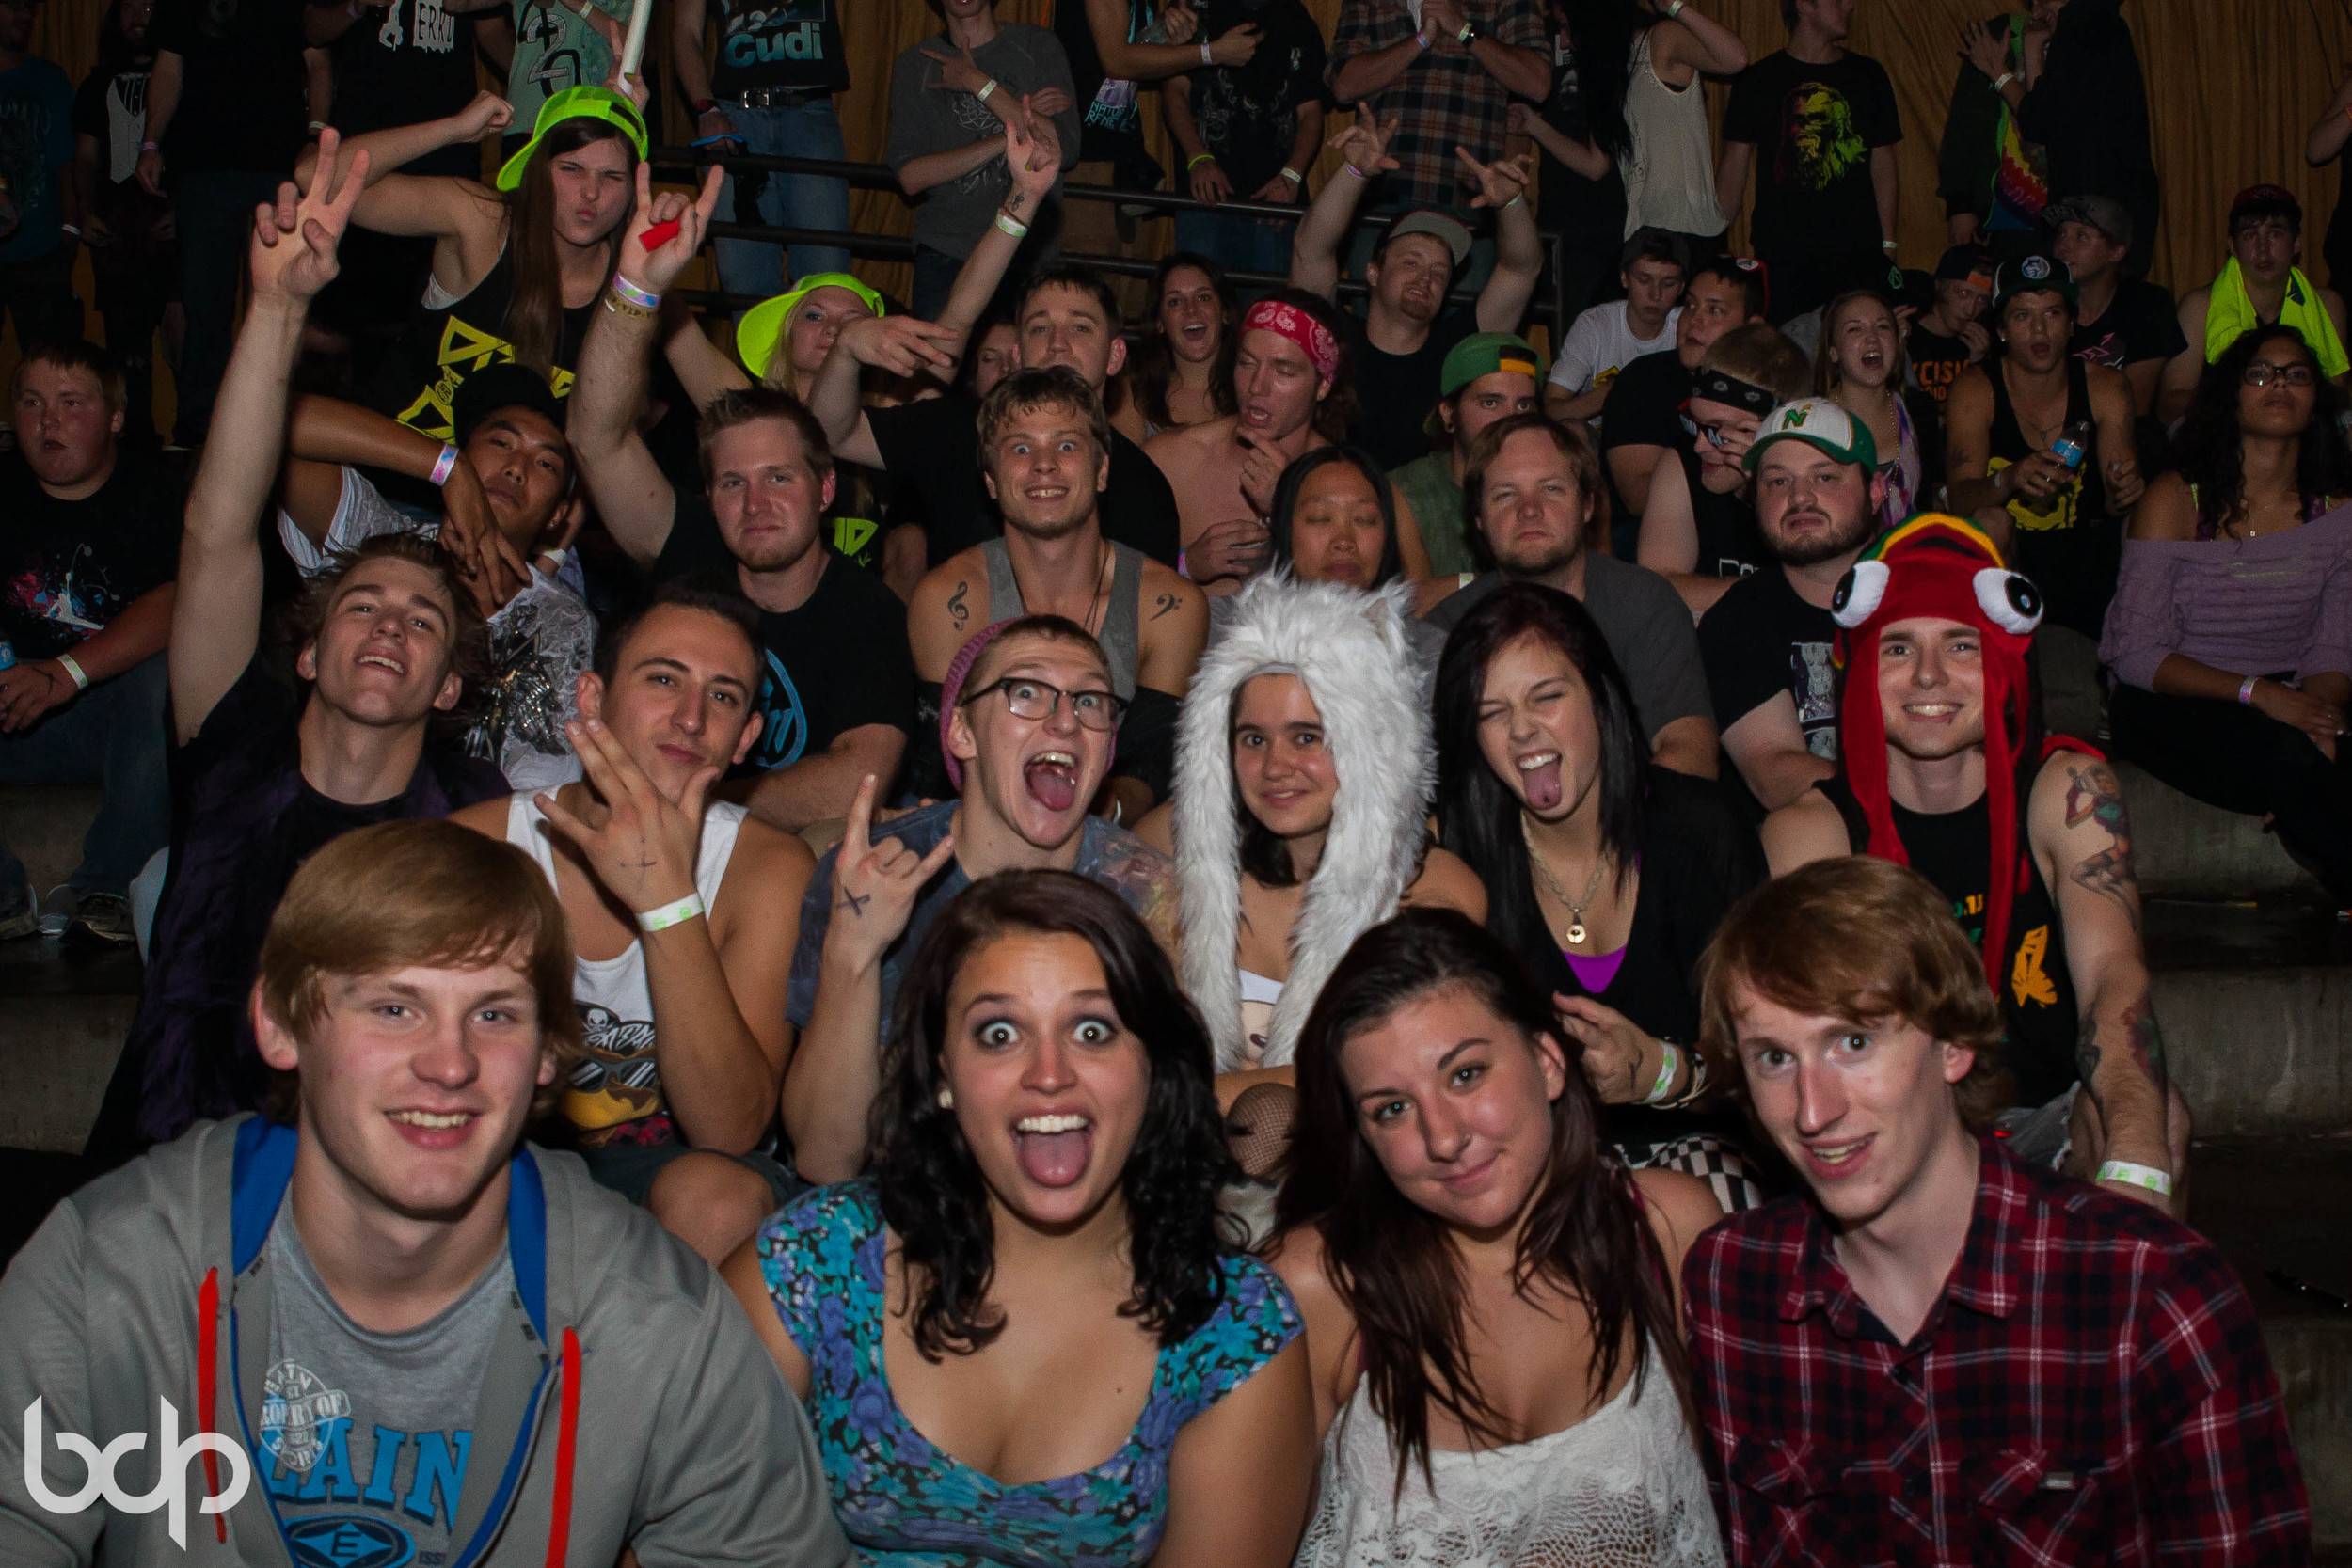 Detroid Live at Skyway 100413 BDP-2.jpg